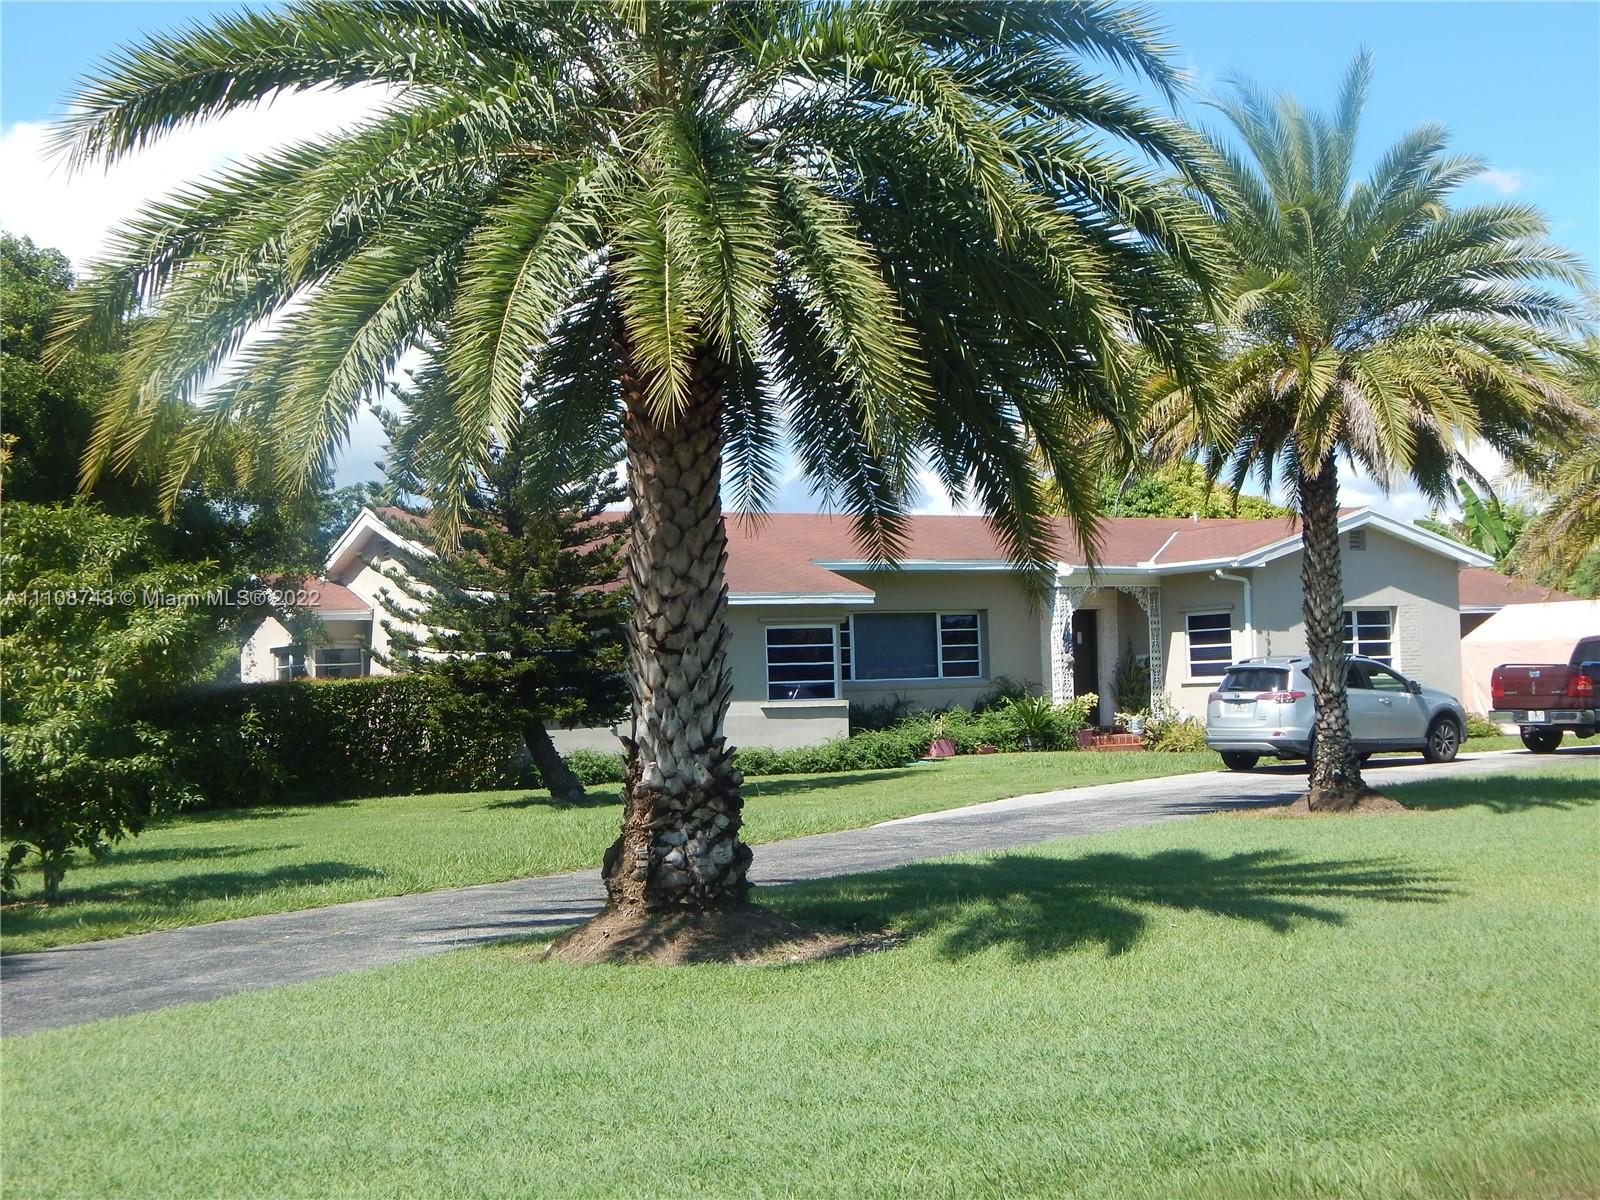 Single Family Home,For Sale,1920 NW 6th Ave, Homestead, Florida 33030,Brickell,realty,broker,condos near me